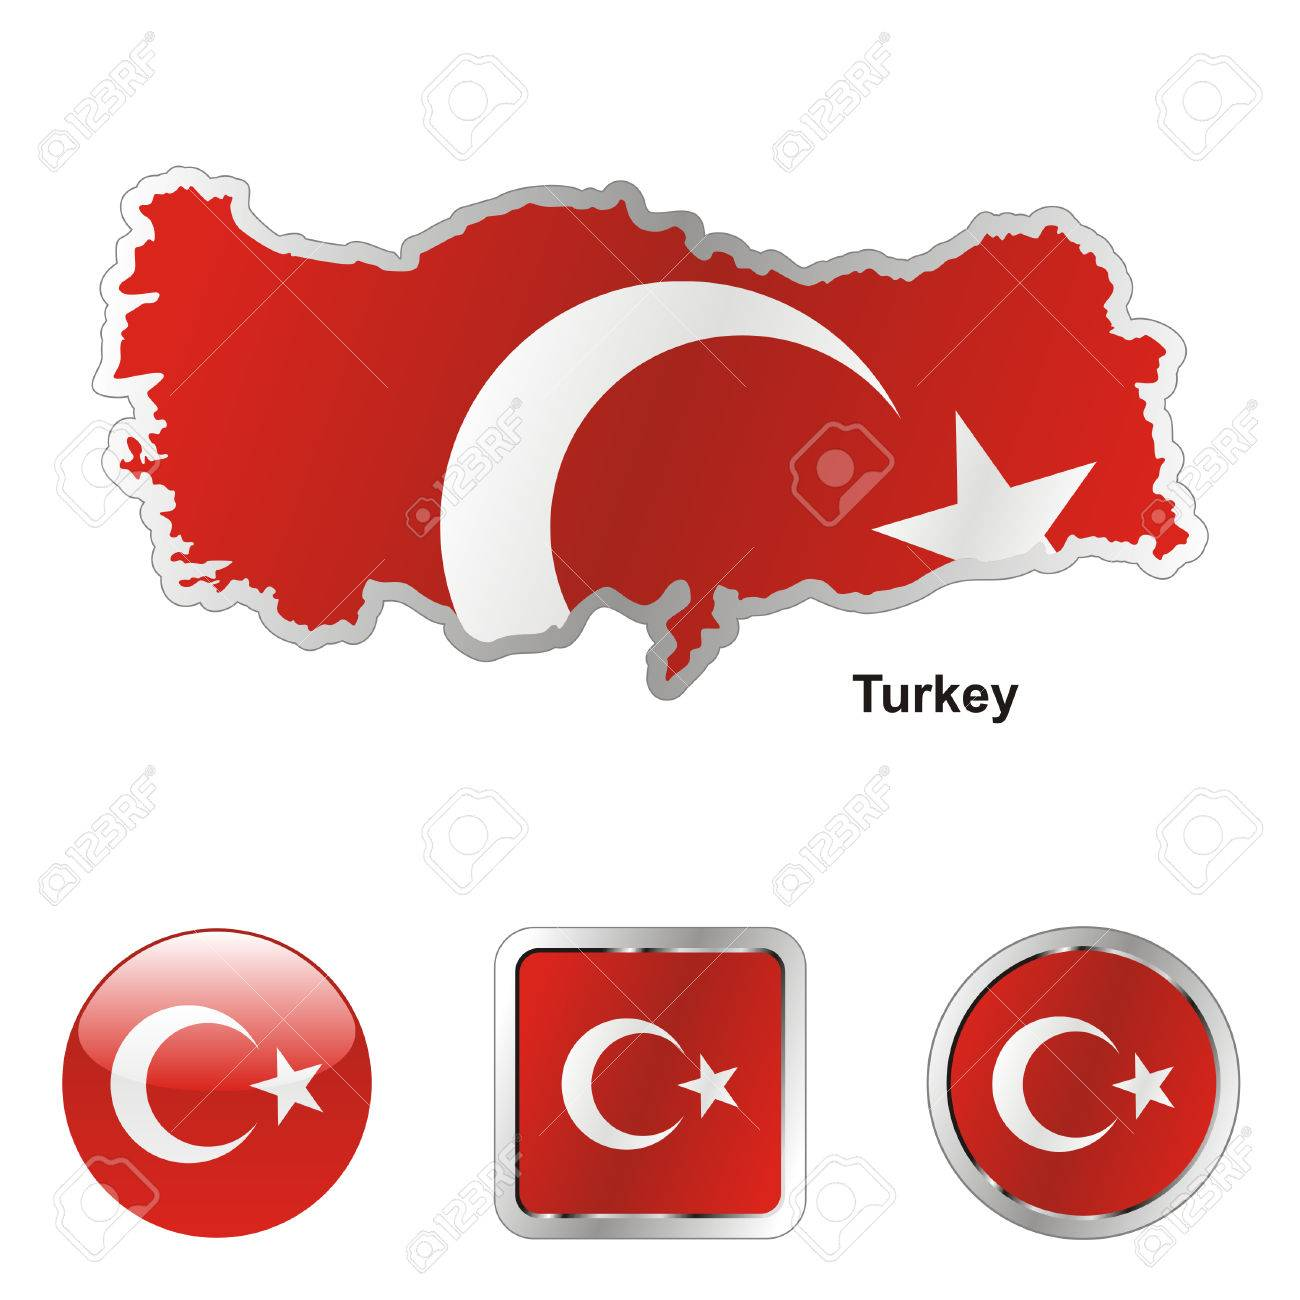 fully editable flag of turkey in map and web buttons shapes Stock Vector - 6255647